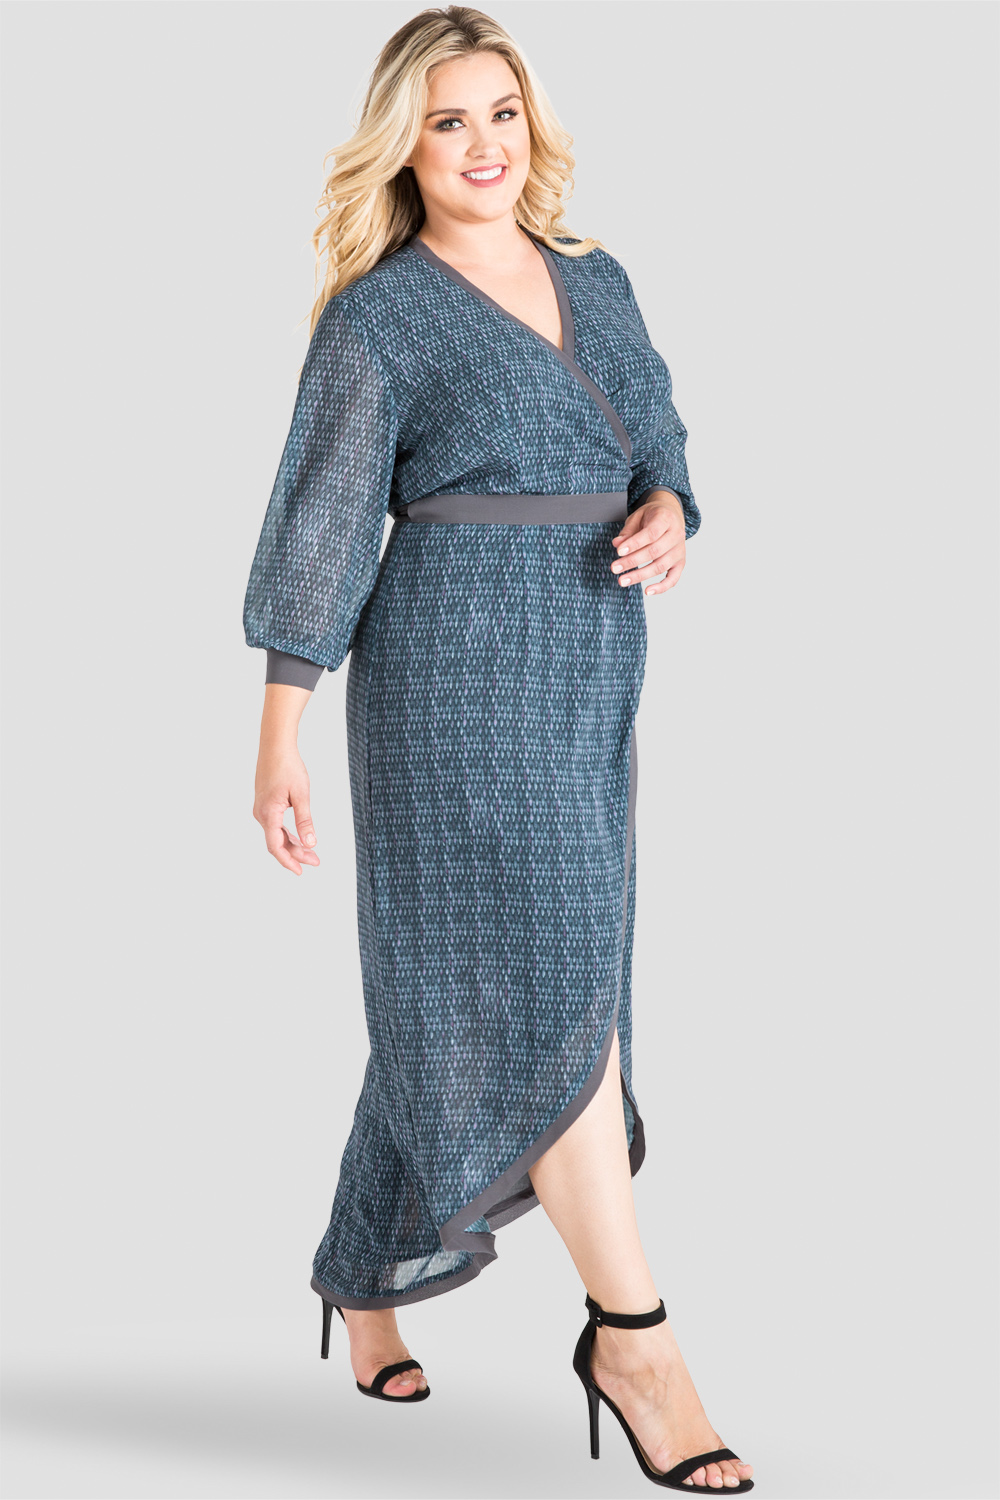 Plus Size, Women's Standards & Practices Gray Snakeskin Print High-Low Maxi Wrap Dress